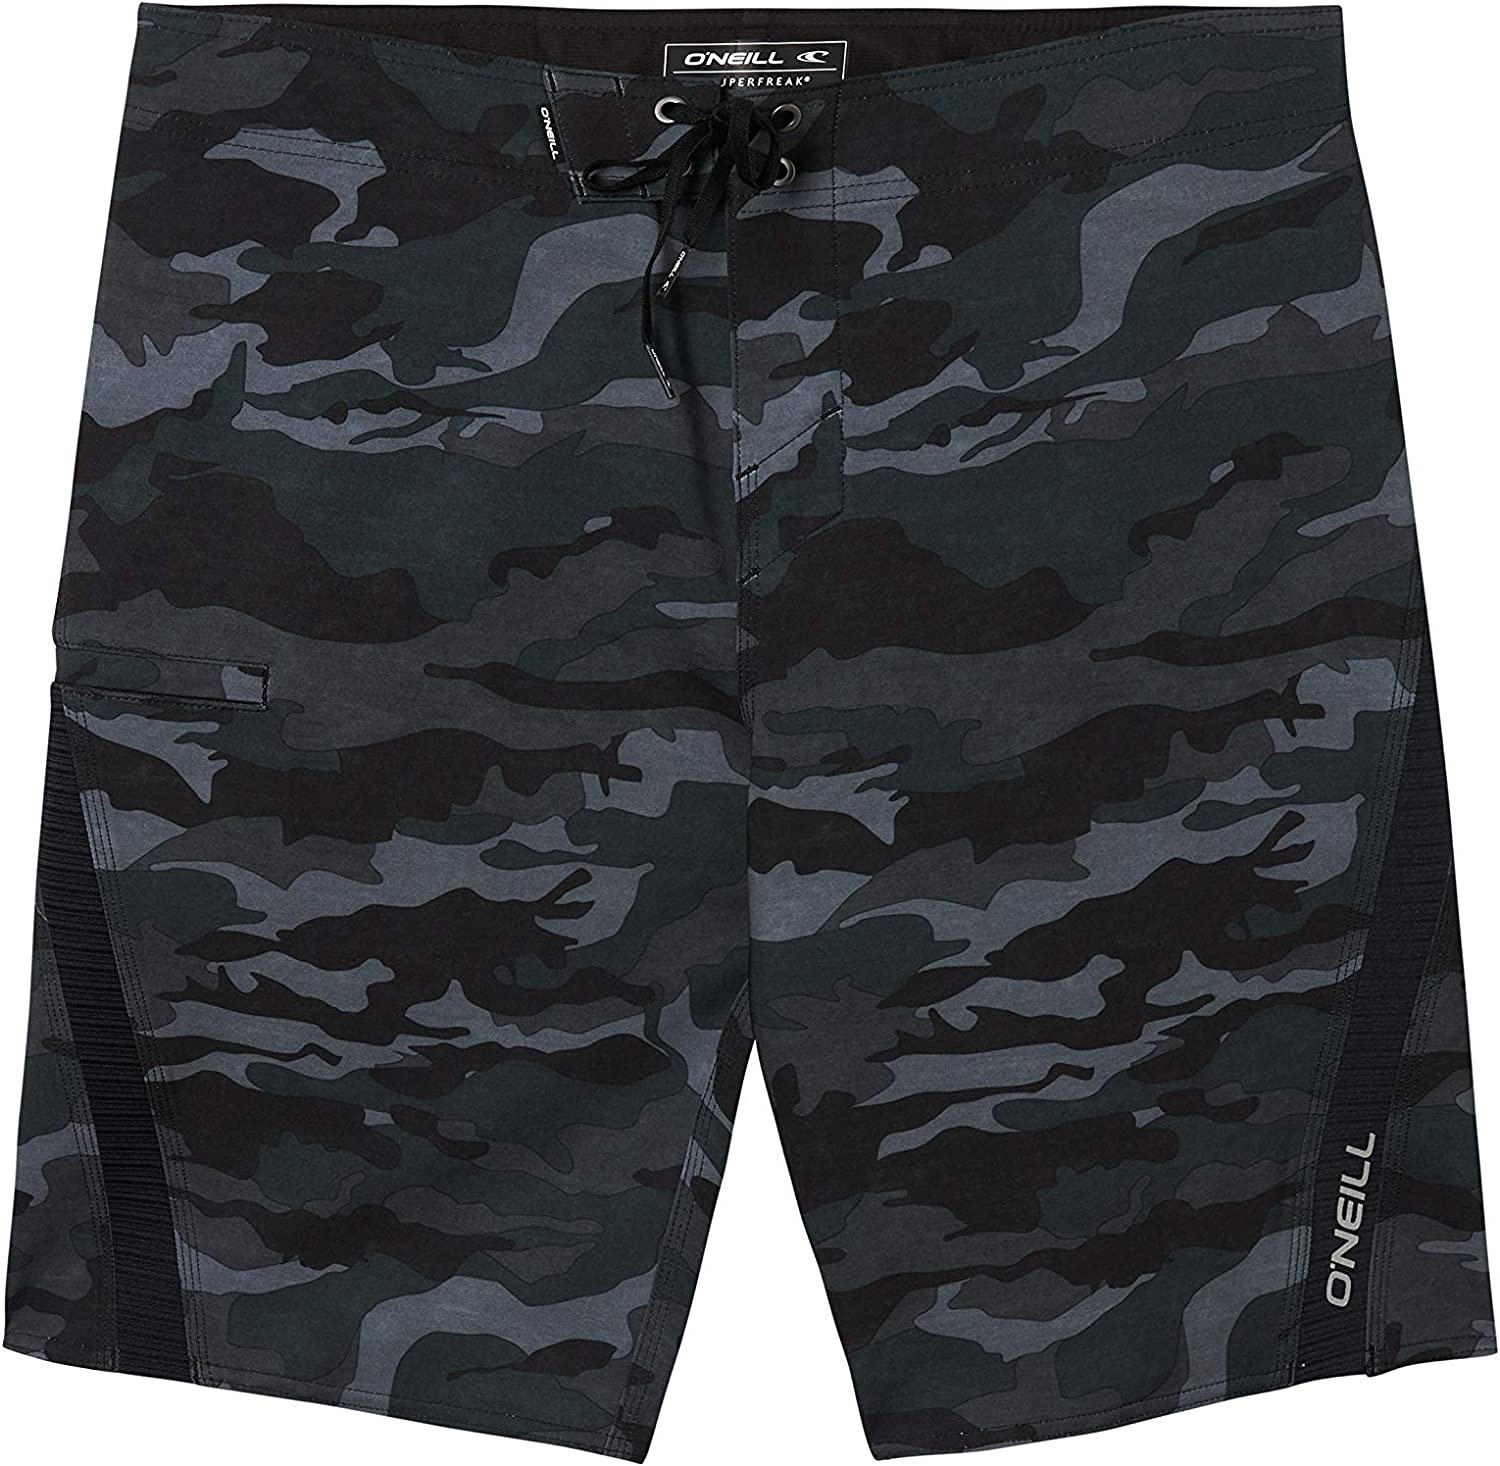 O'NEILL Men's NEW before National products selling Water Resistant Hyperfreak Stretch Swim Boardshort